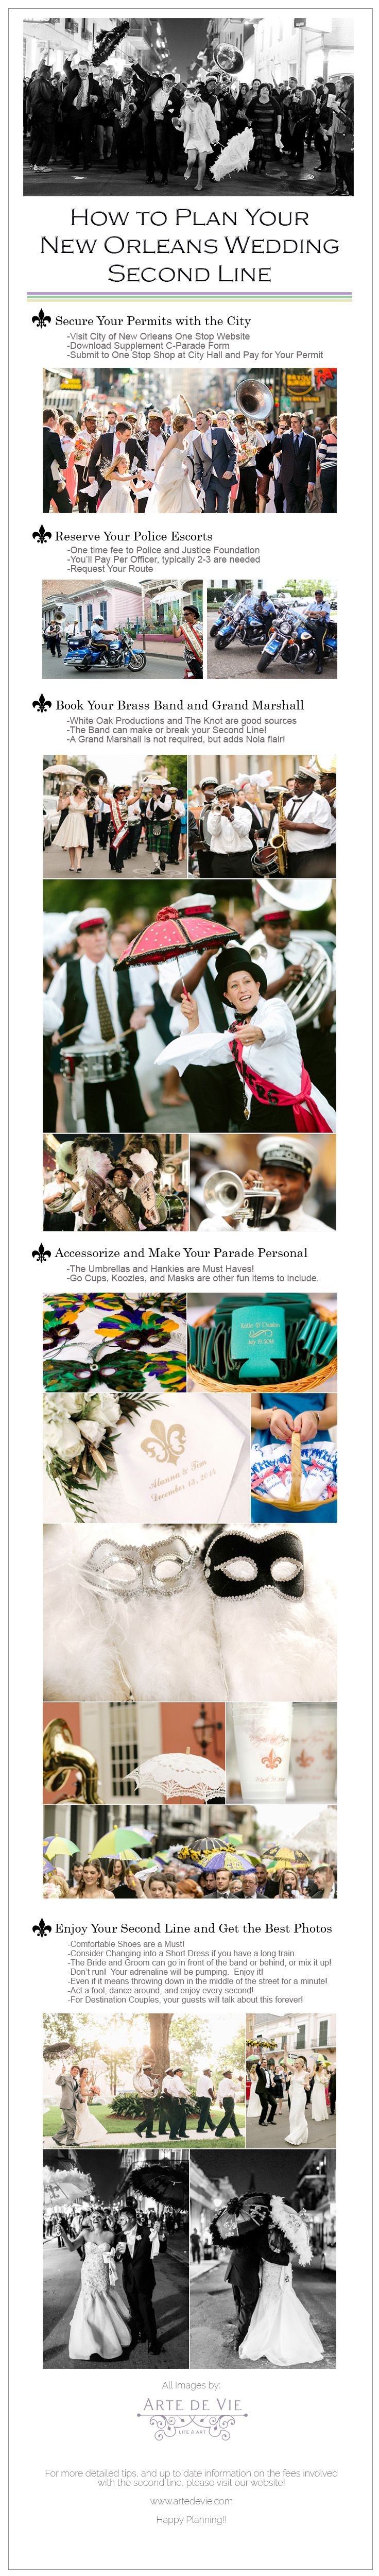 How to plan your 2nd Line for a new orleans wedding